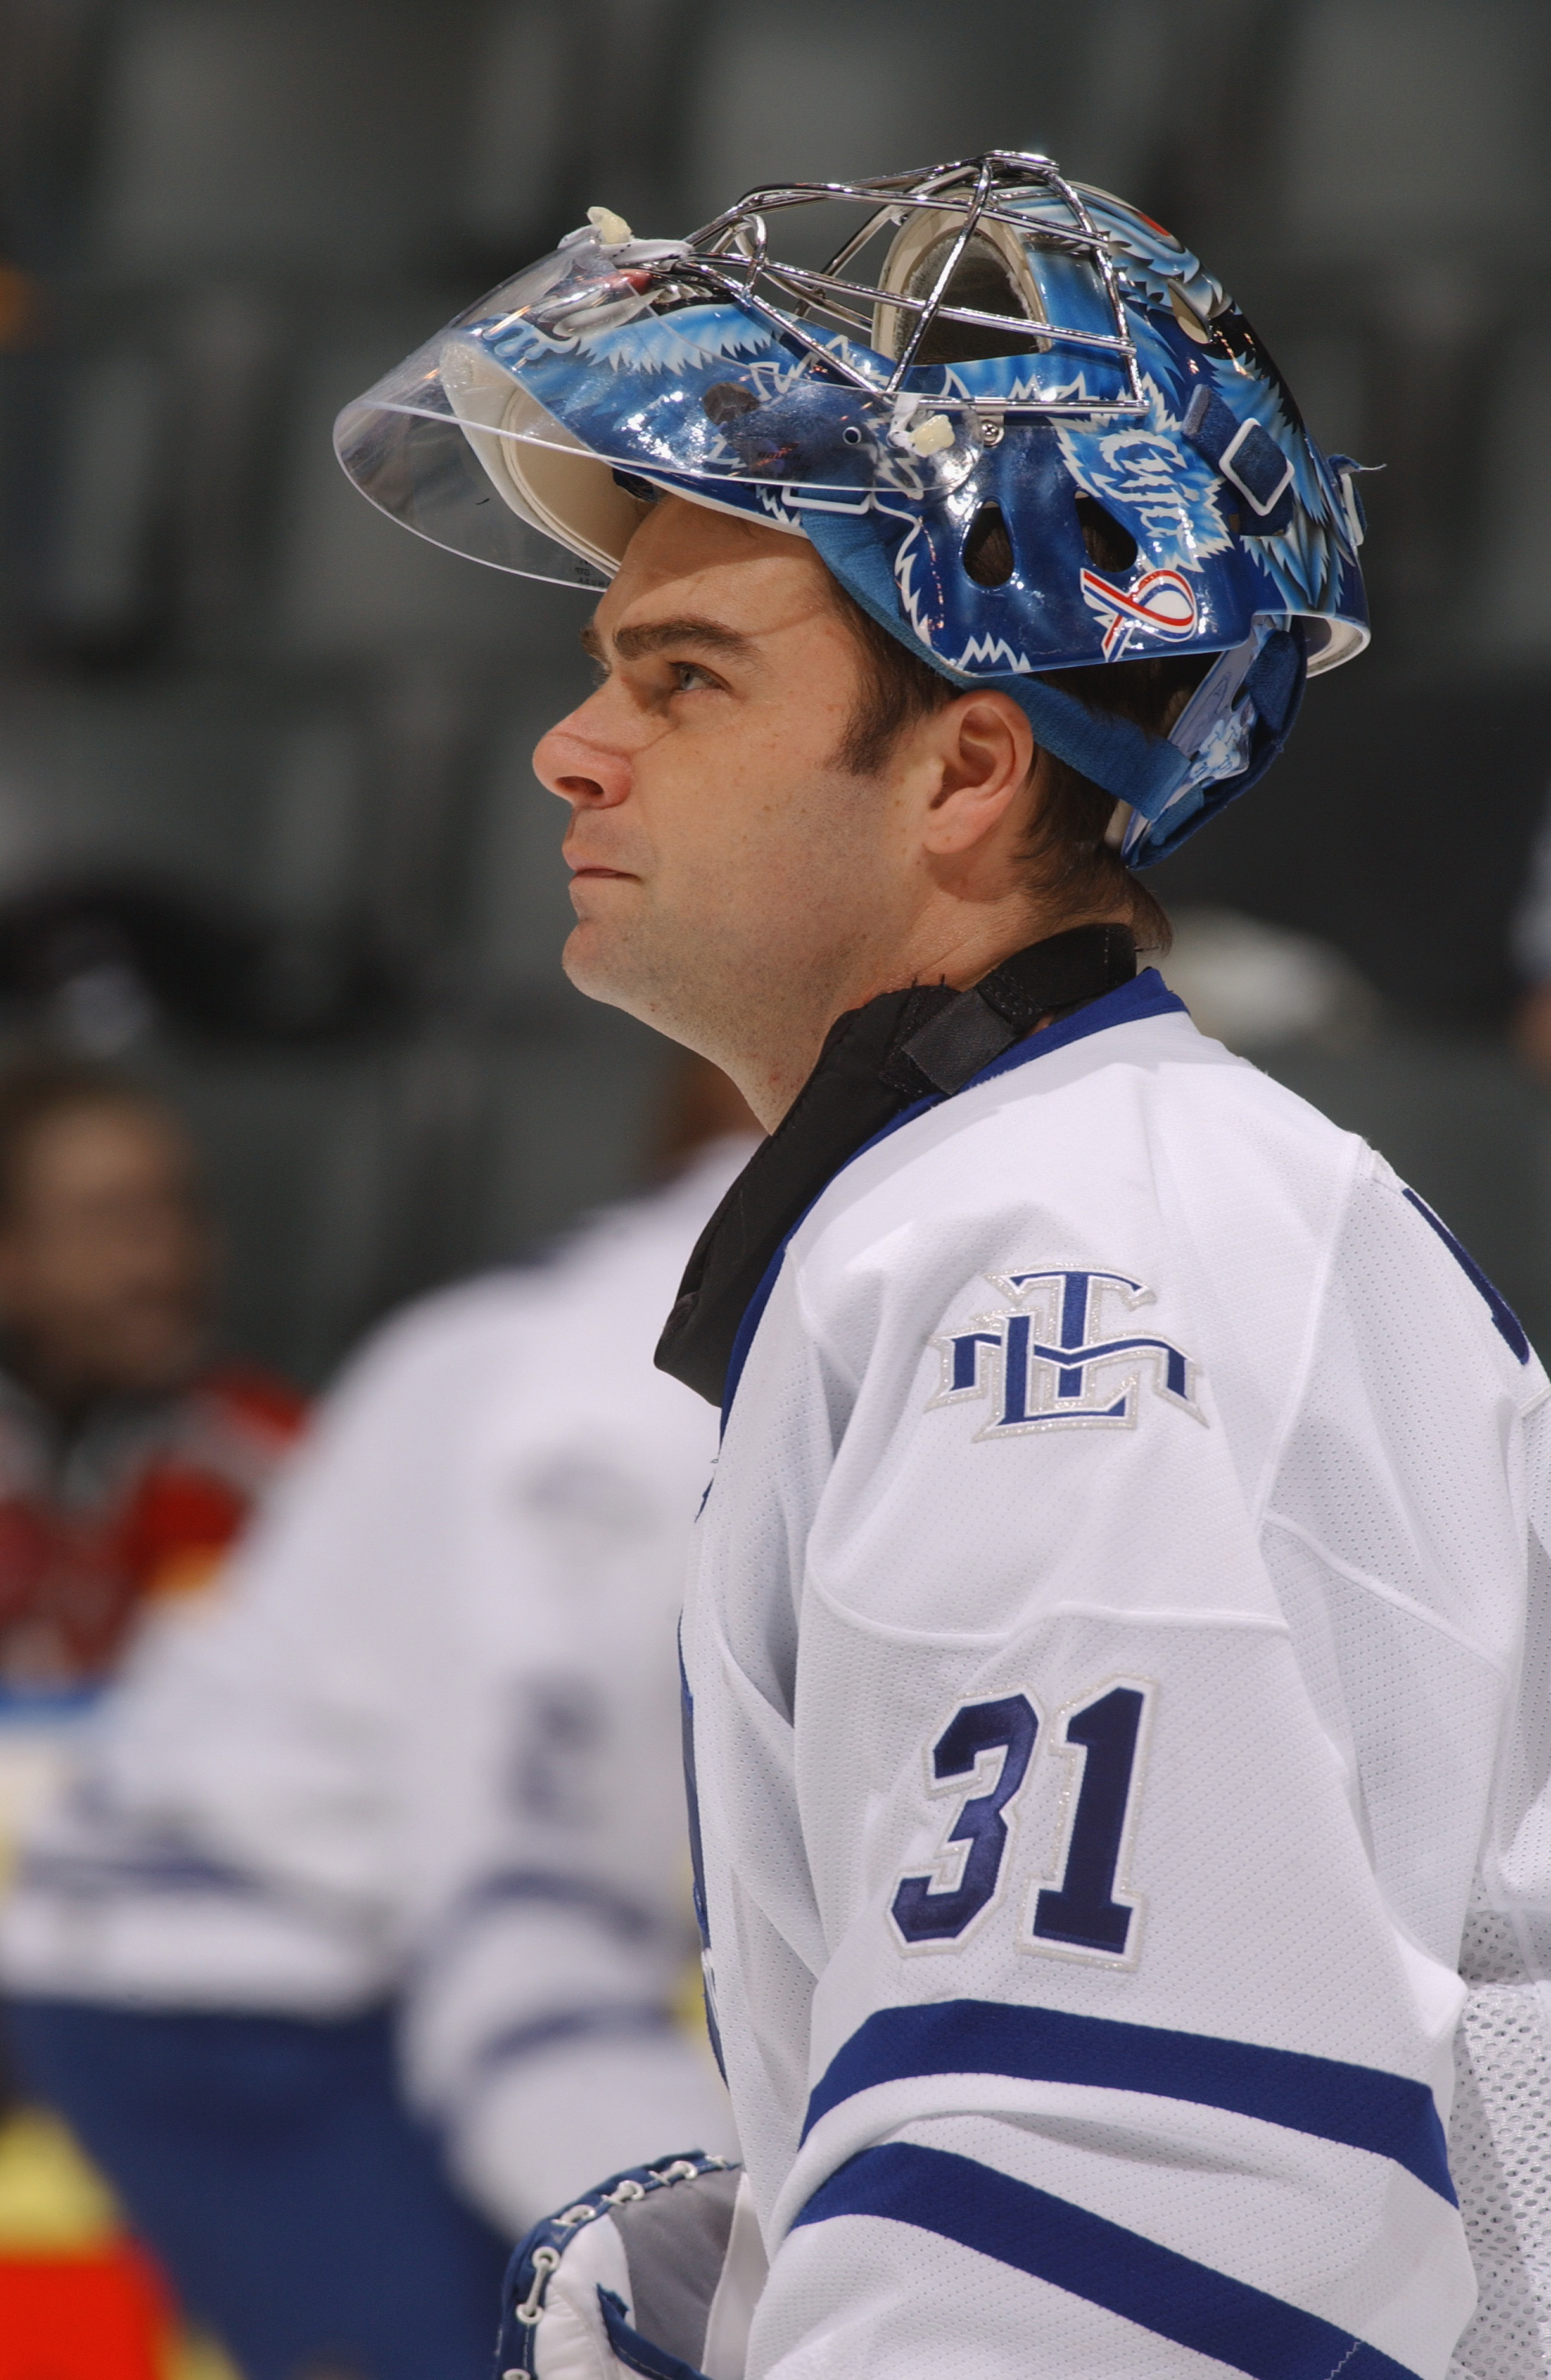 TORONTO - DECEMBER 18:  Goaltender Curtis Joseph #31 of the Toronto Maple Leafs looks on against the Los Angeles Kings during the game on December 18, 2001 at Air Canada Centre in Toronto, Ontario, Canada . The Kings won 3-1.  (Photo by Dave Sandford/Gett